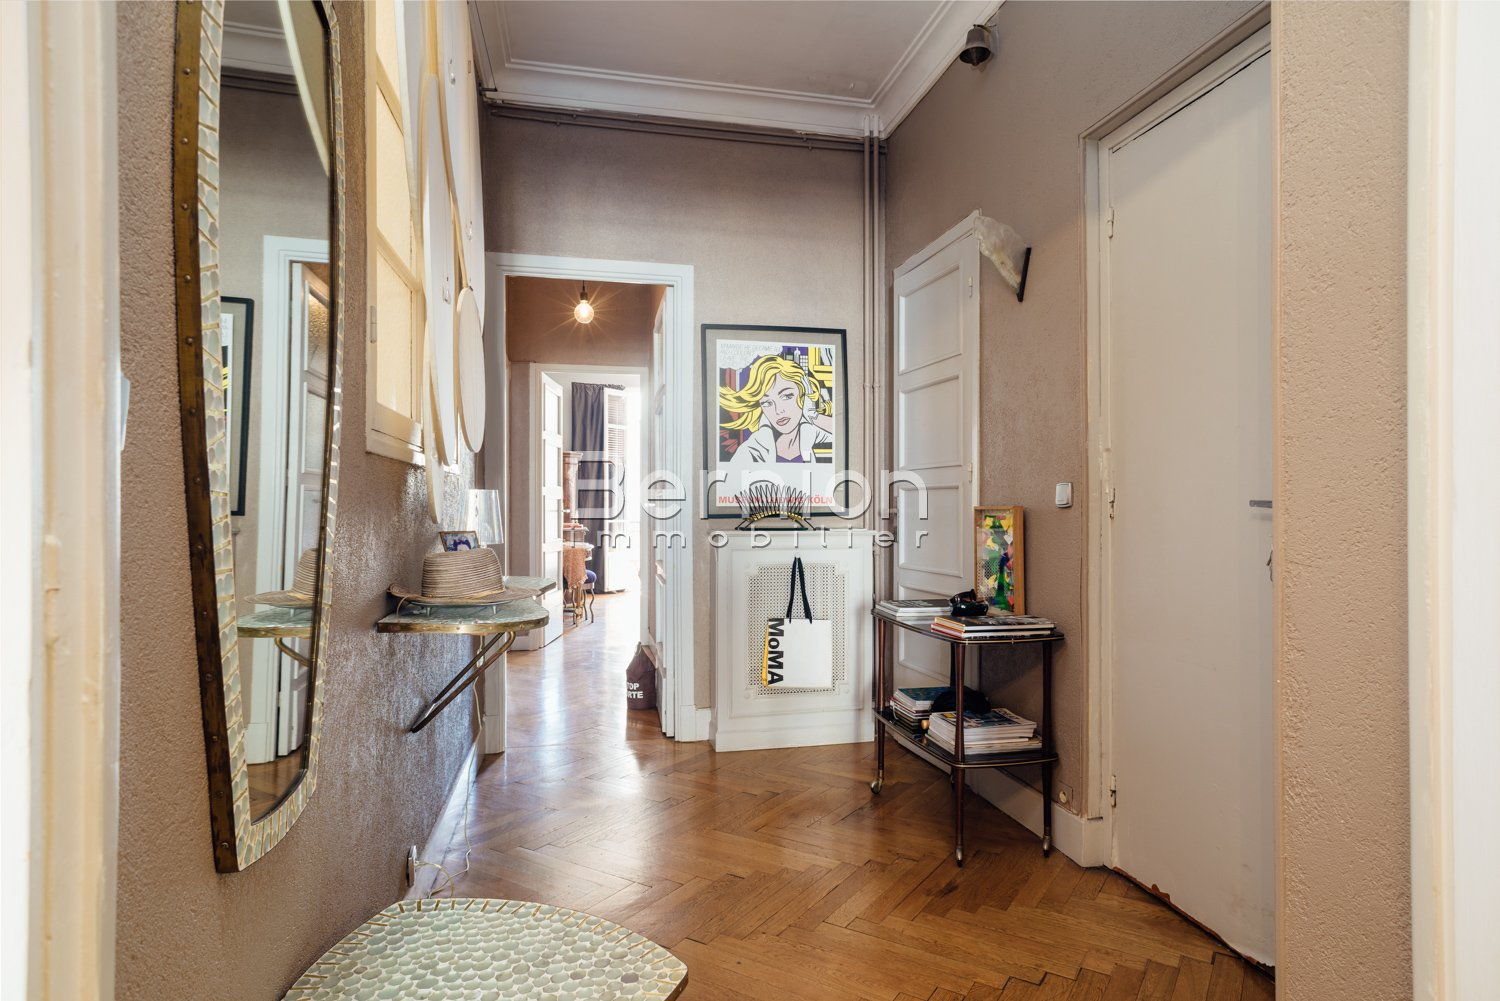 For Sale, Nice City Center Beautiful 72 sqm Apartment with terrace in Art Deco Building / photo 16